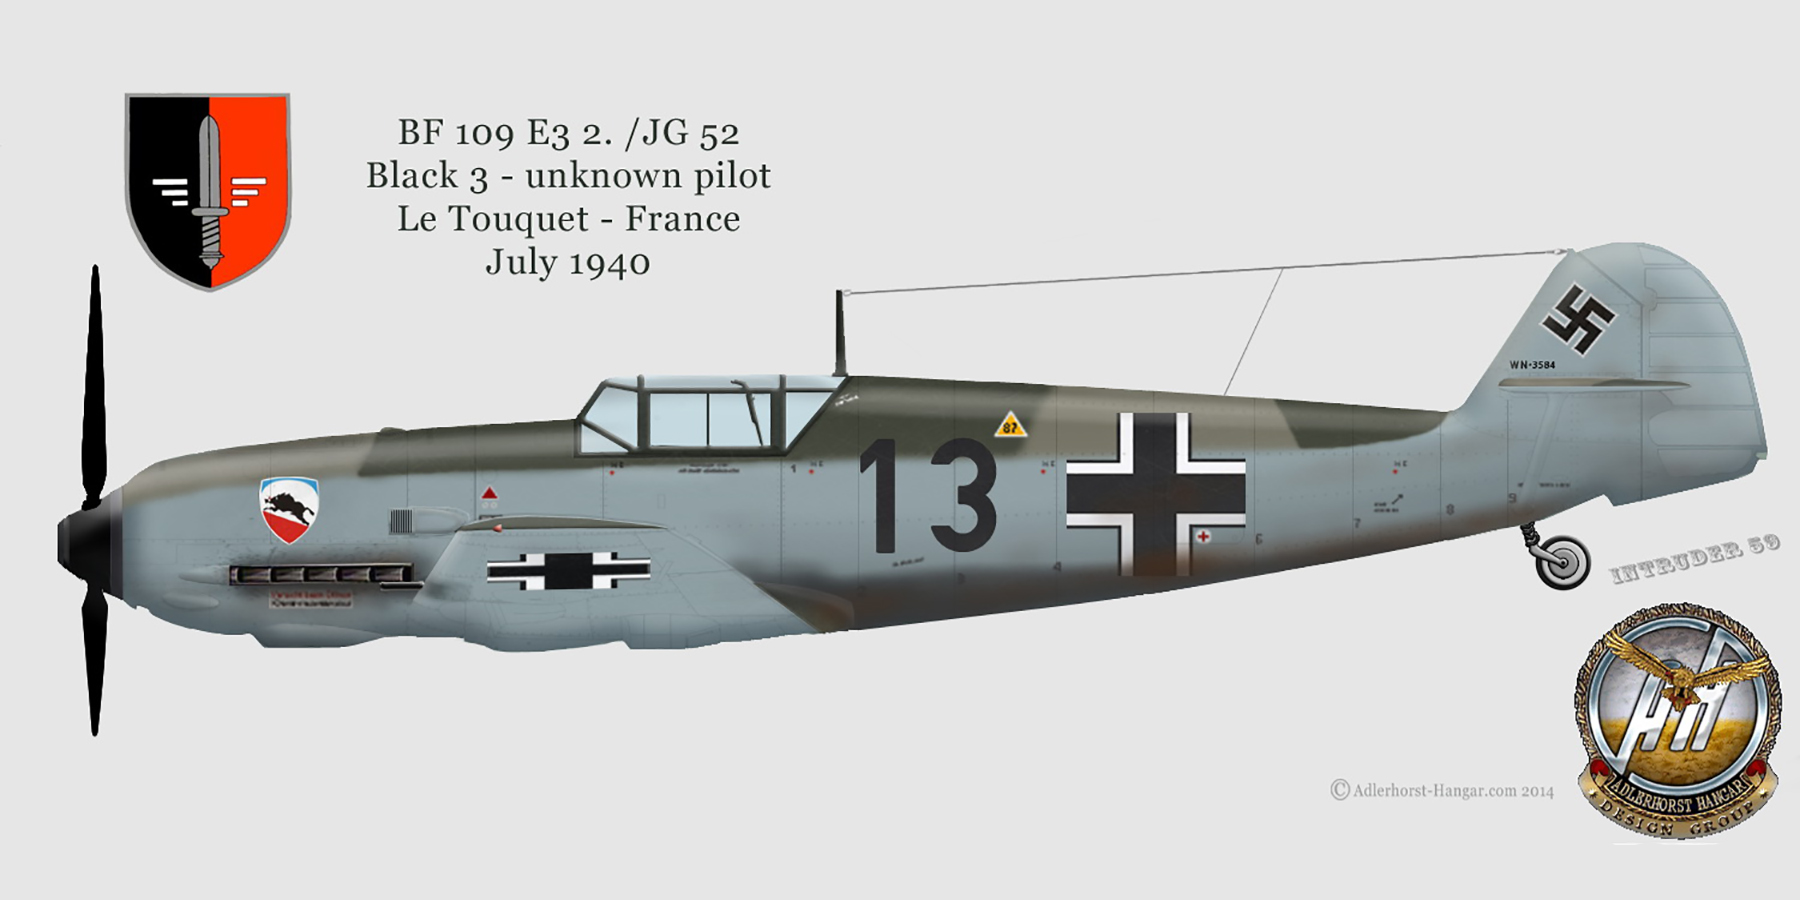 Messerschmitt Bf 109E3 2.JG52 Black 13 unknown pilot Le Touquet France June 1940 0A